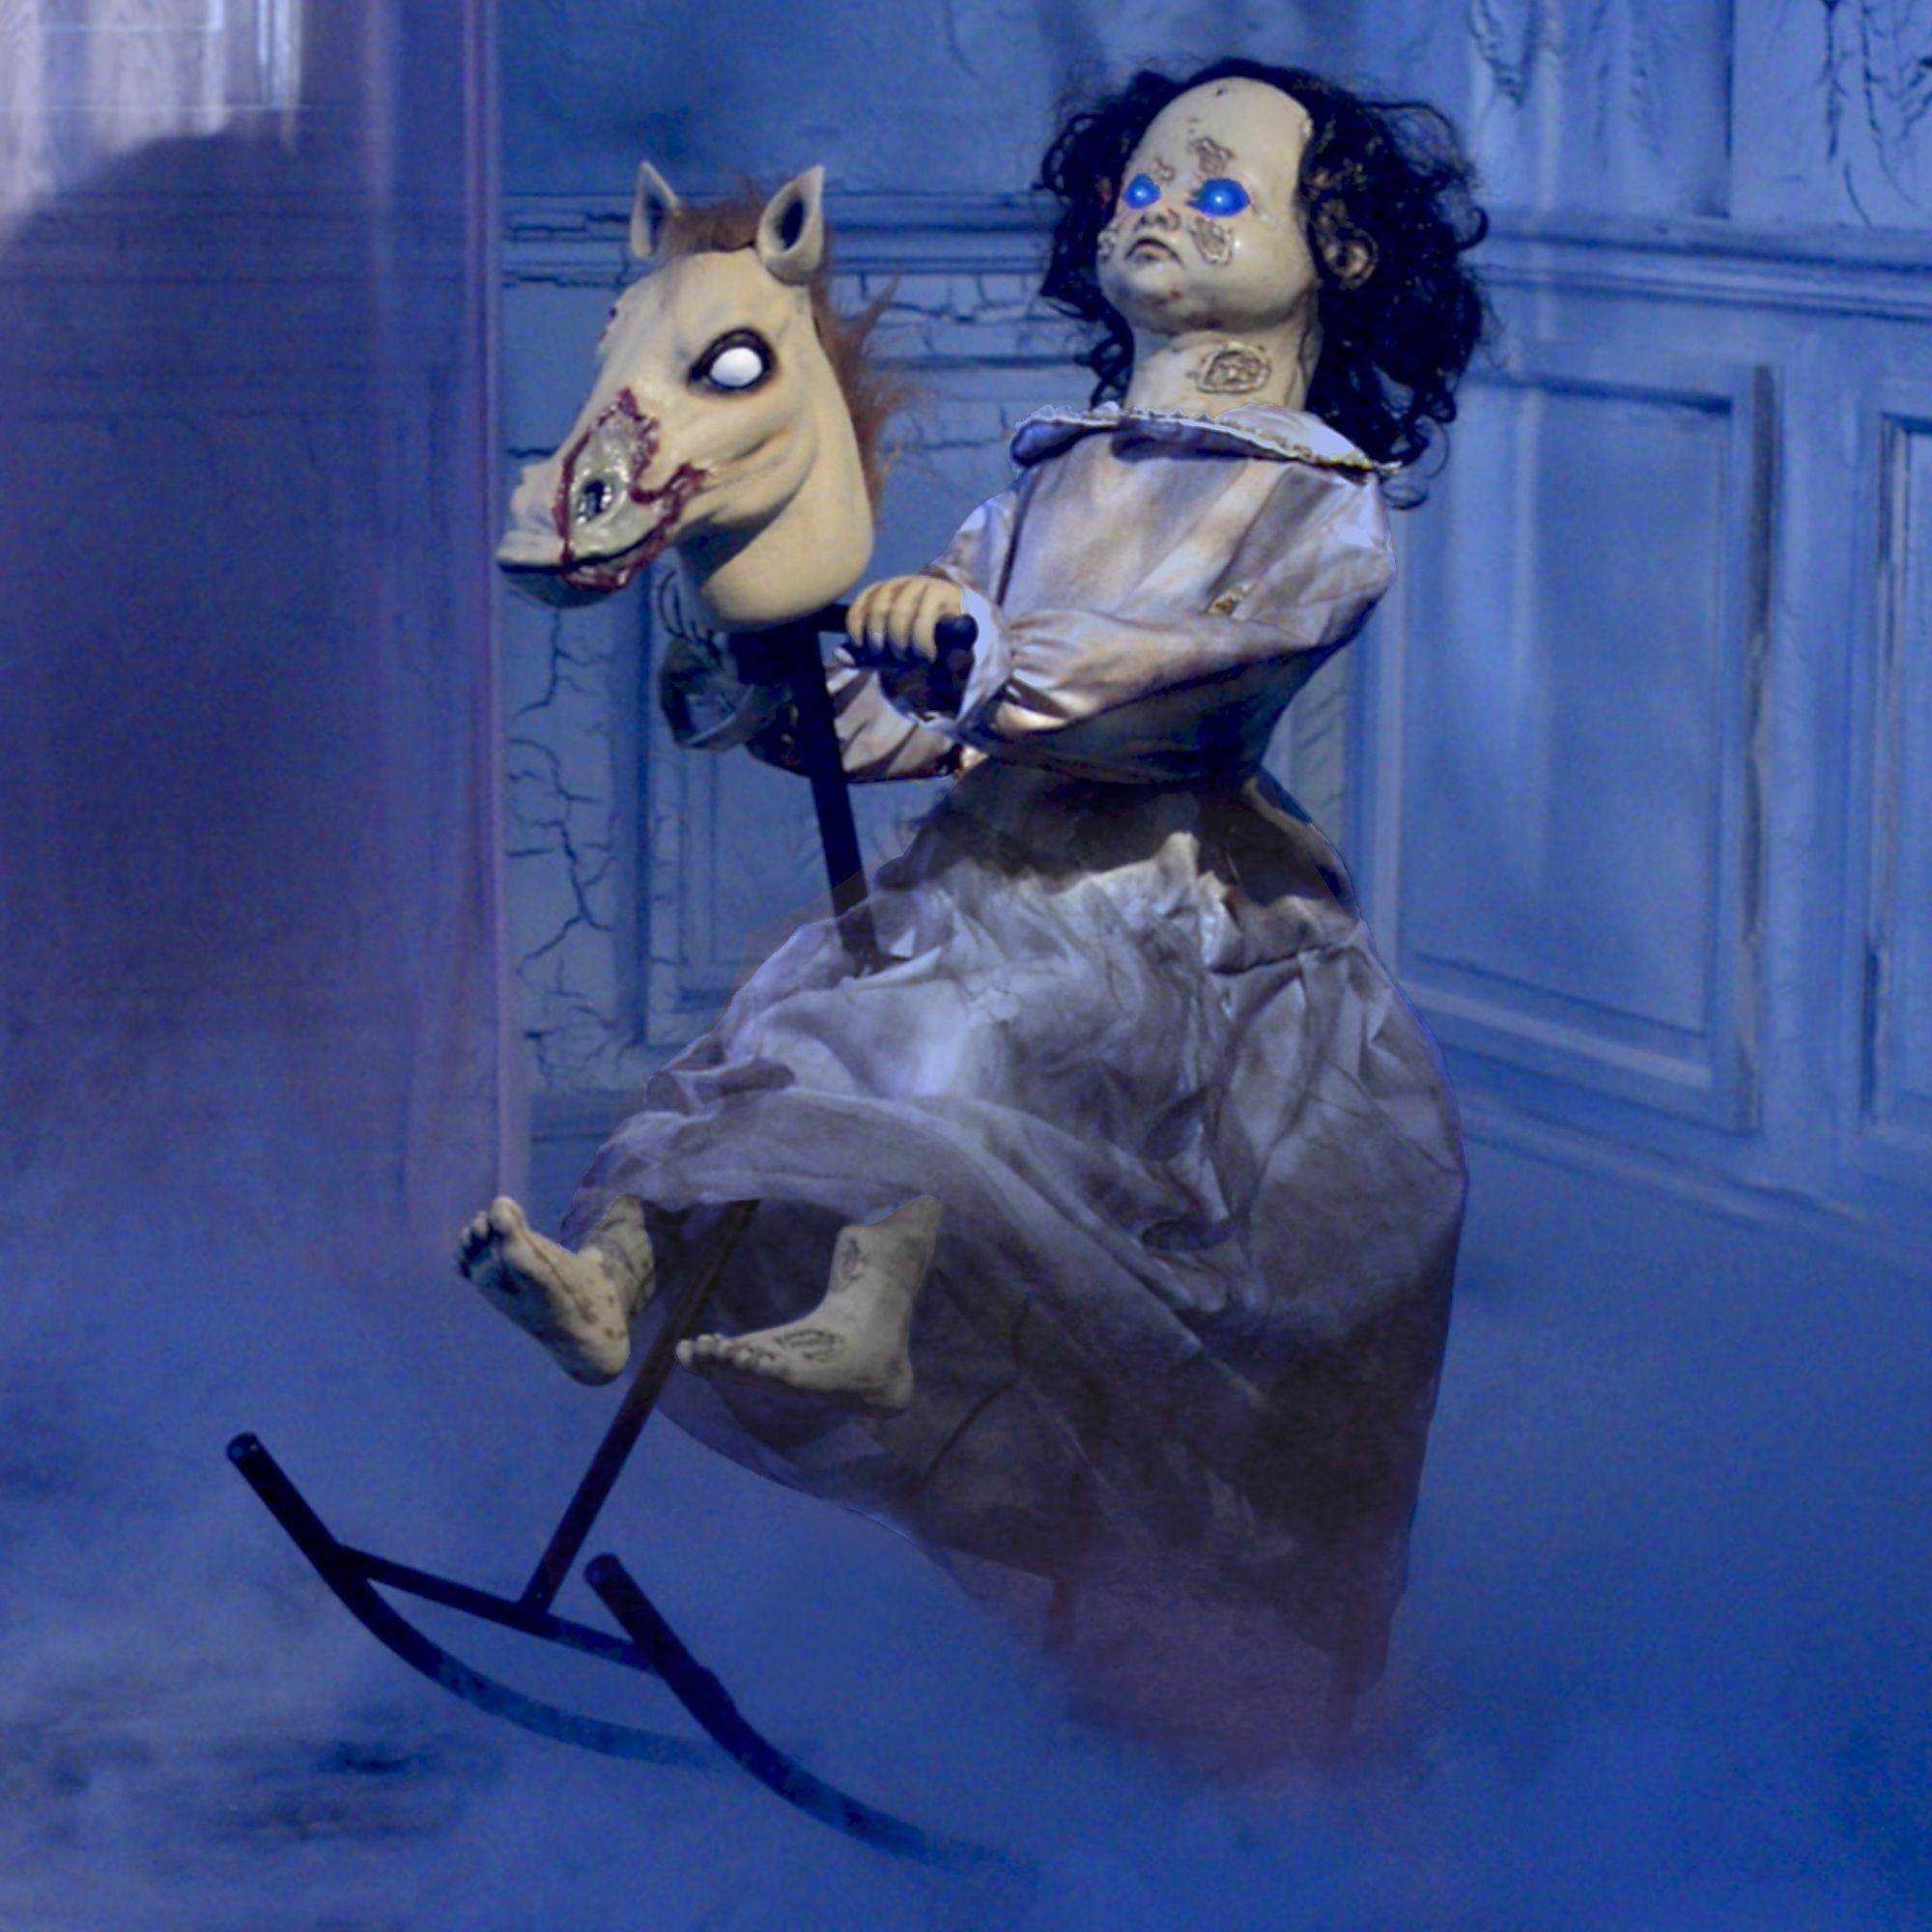 Astonishing Details About Animated Scary Rocking Horse Girl Halloween Decorations 32 25 X 24 X 18 5 Machost Co Dining Chair Design Ideas Machostcouk